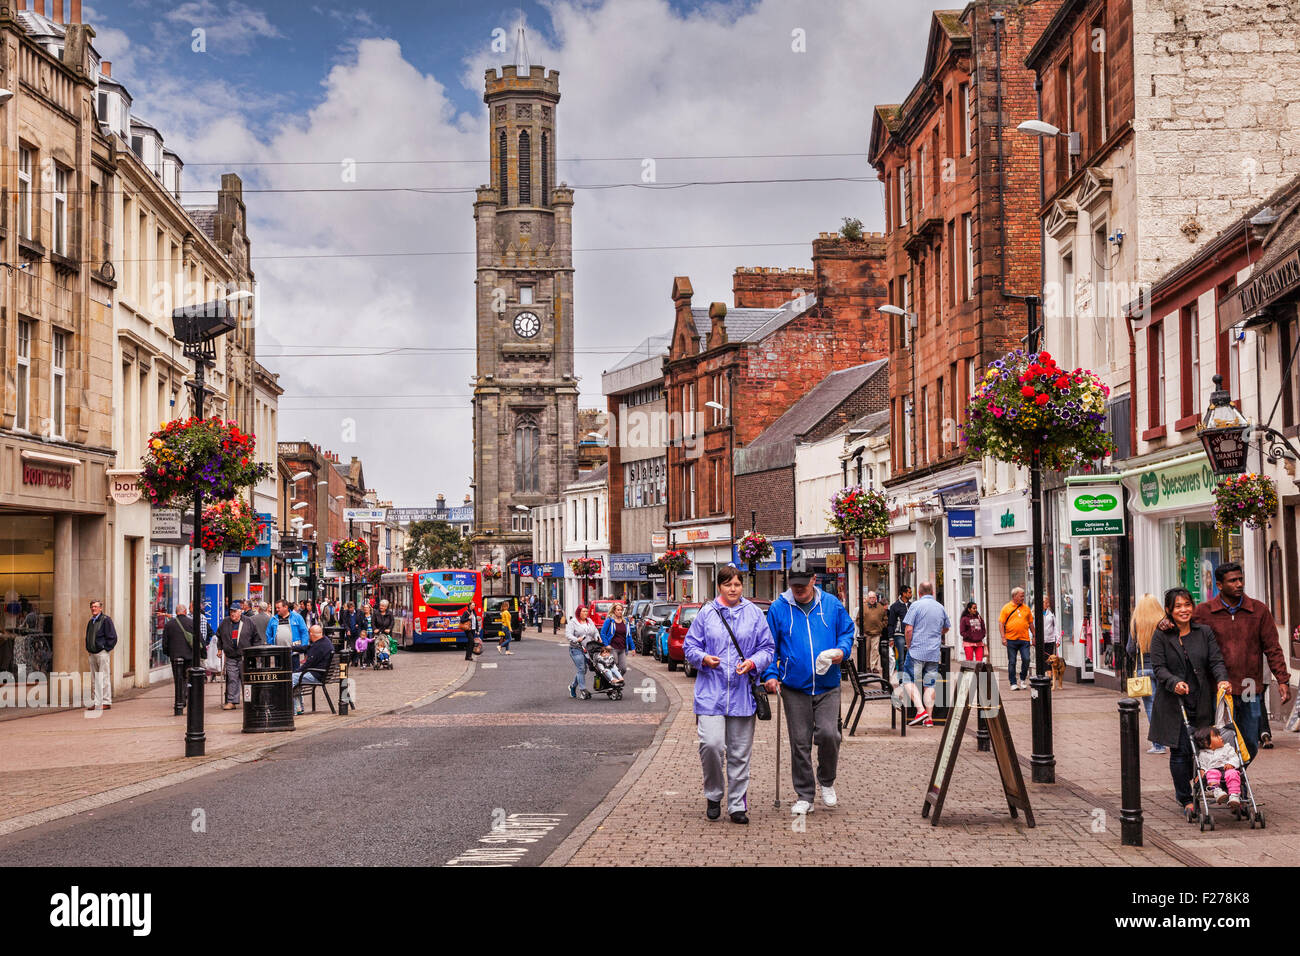 A busy shopping day in High Street, Ayr, South Ayrshire, Scotland. The clock tower is the Wallace Tower. - Stock Image